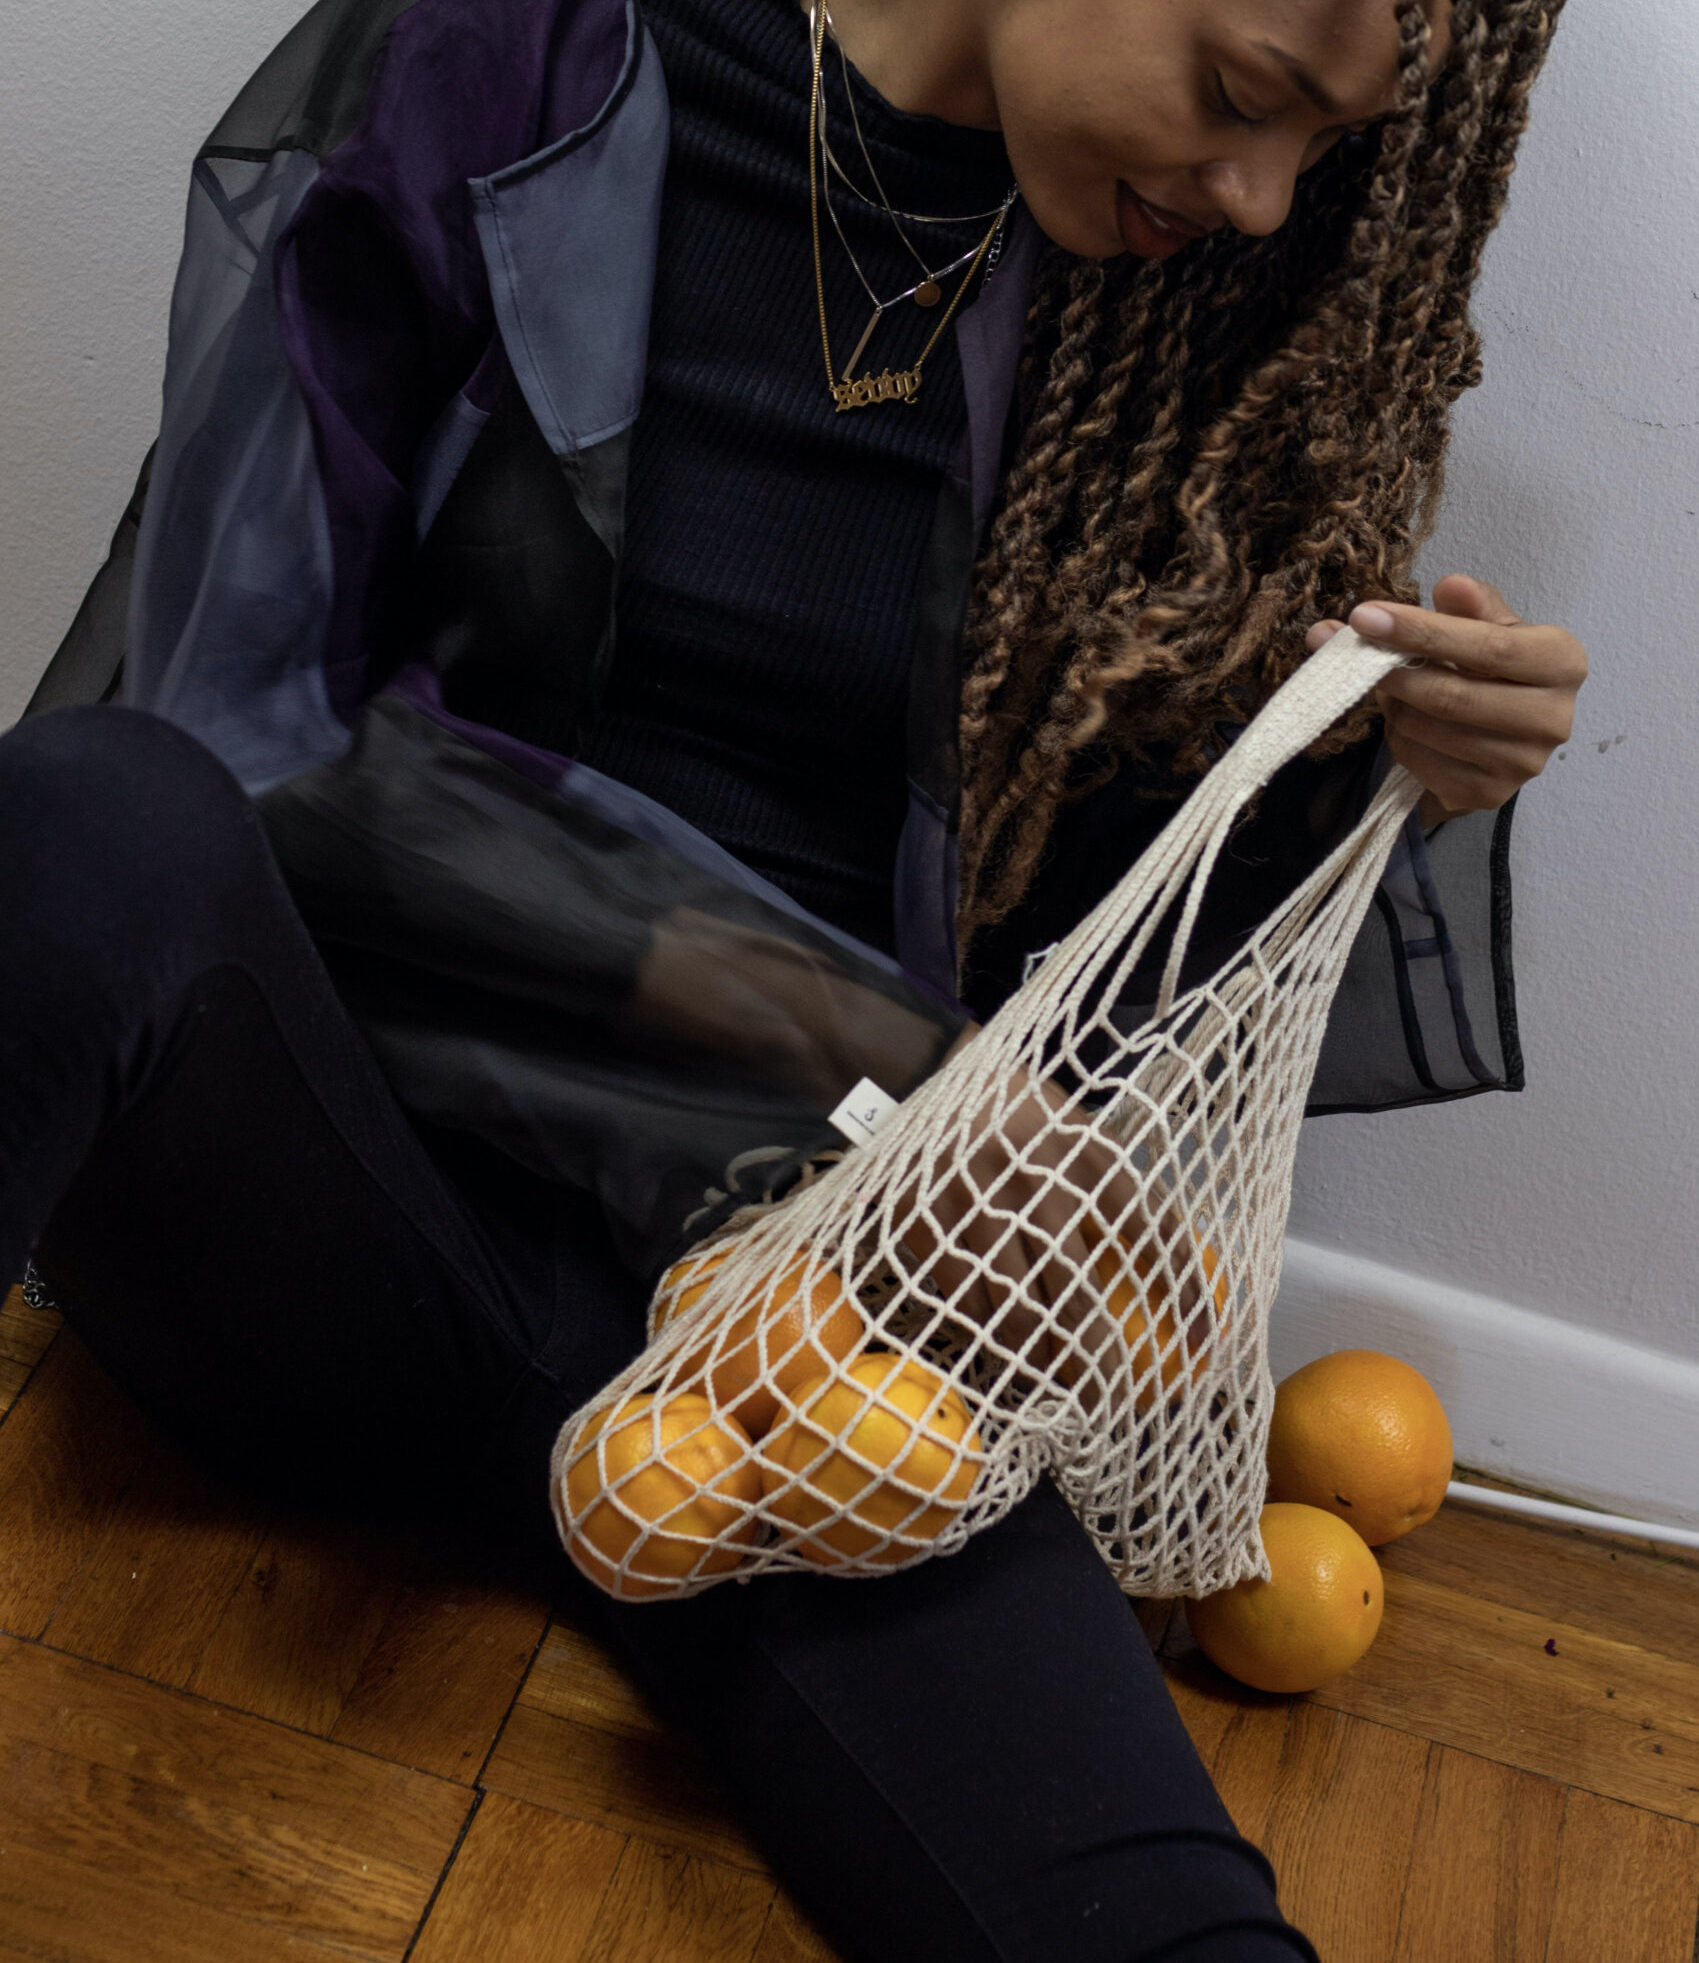 Sirena Nets Offers the Perfect Eco-Friendly Shopping Accessory